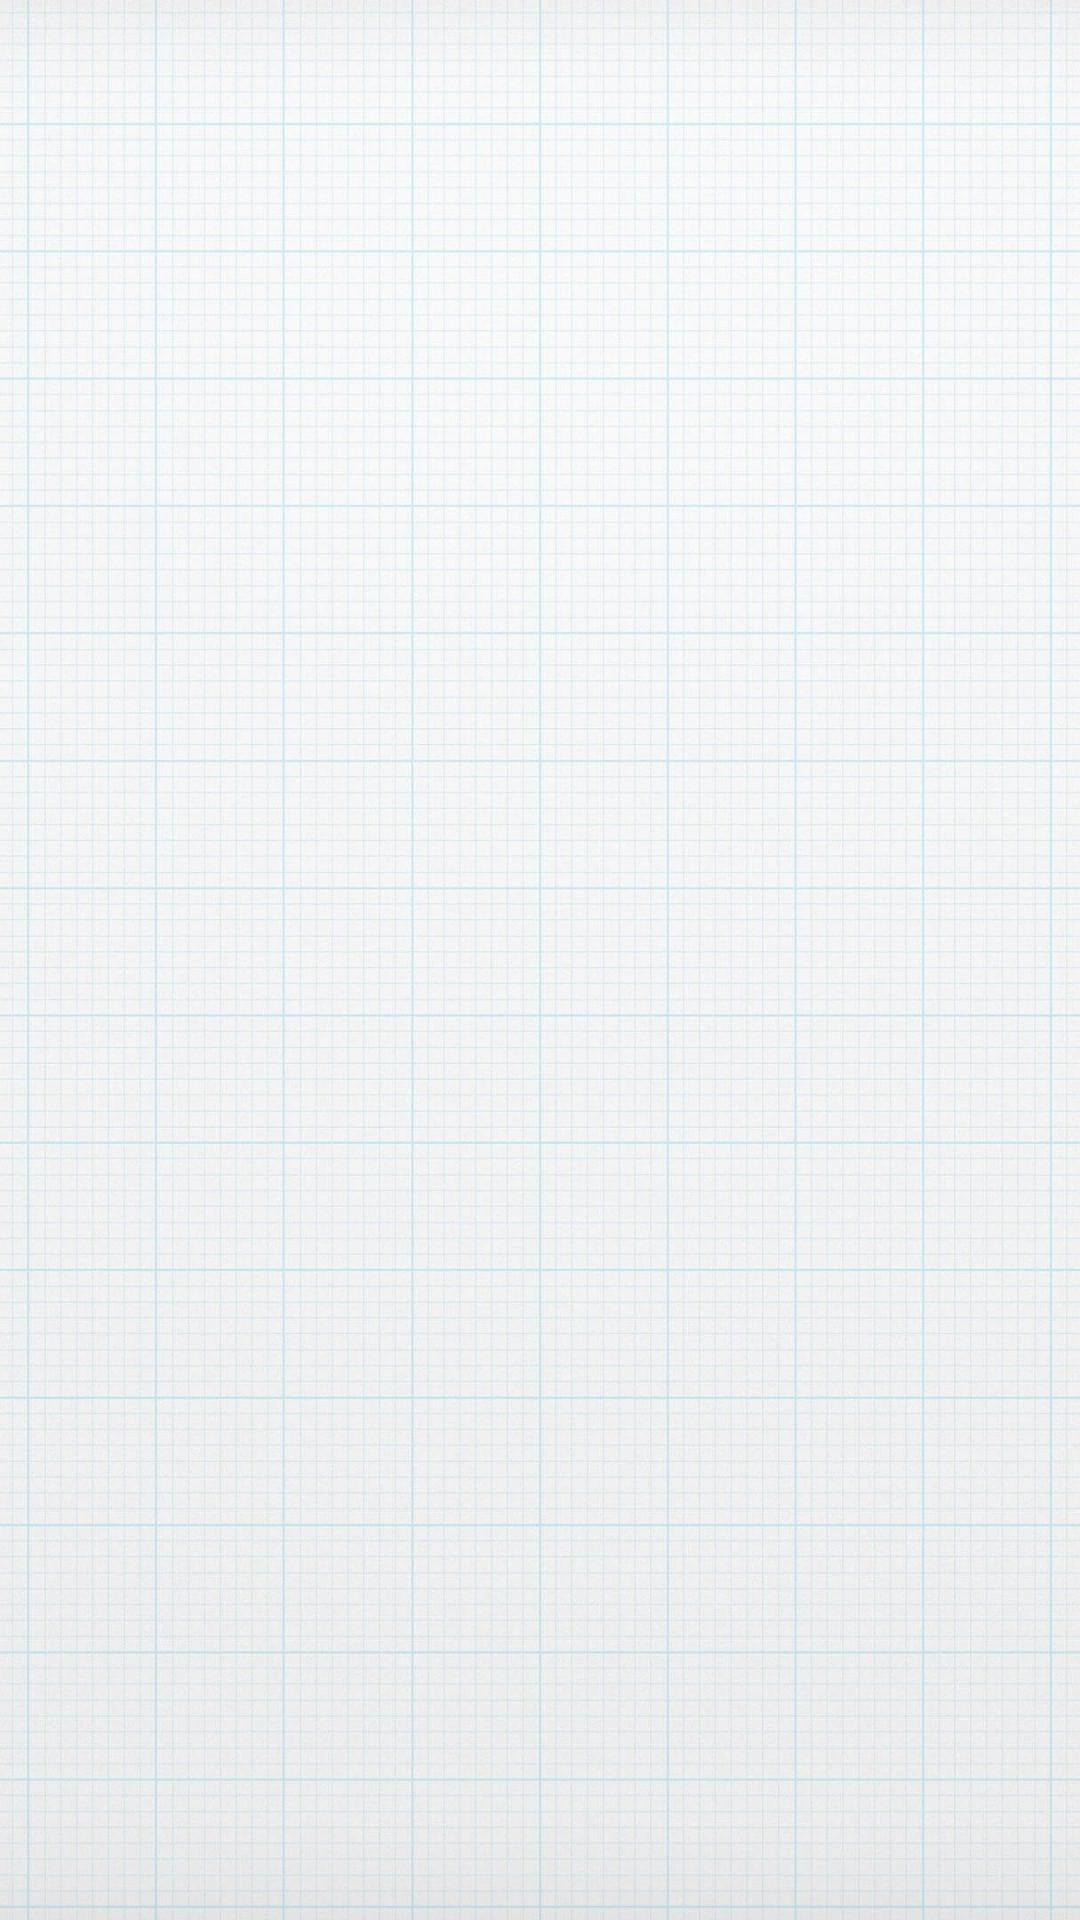 Graph Paper Grid Wallpaper for LG G2